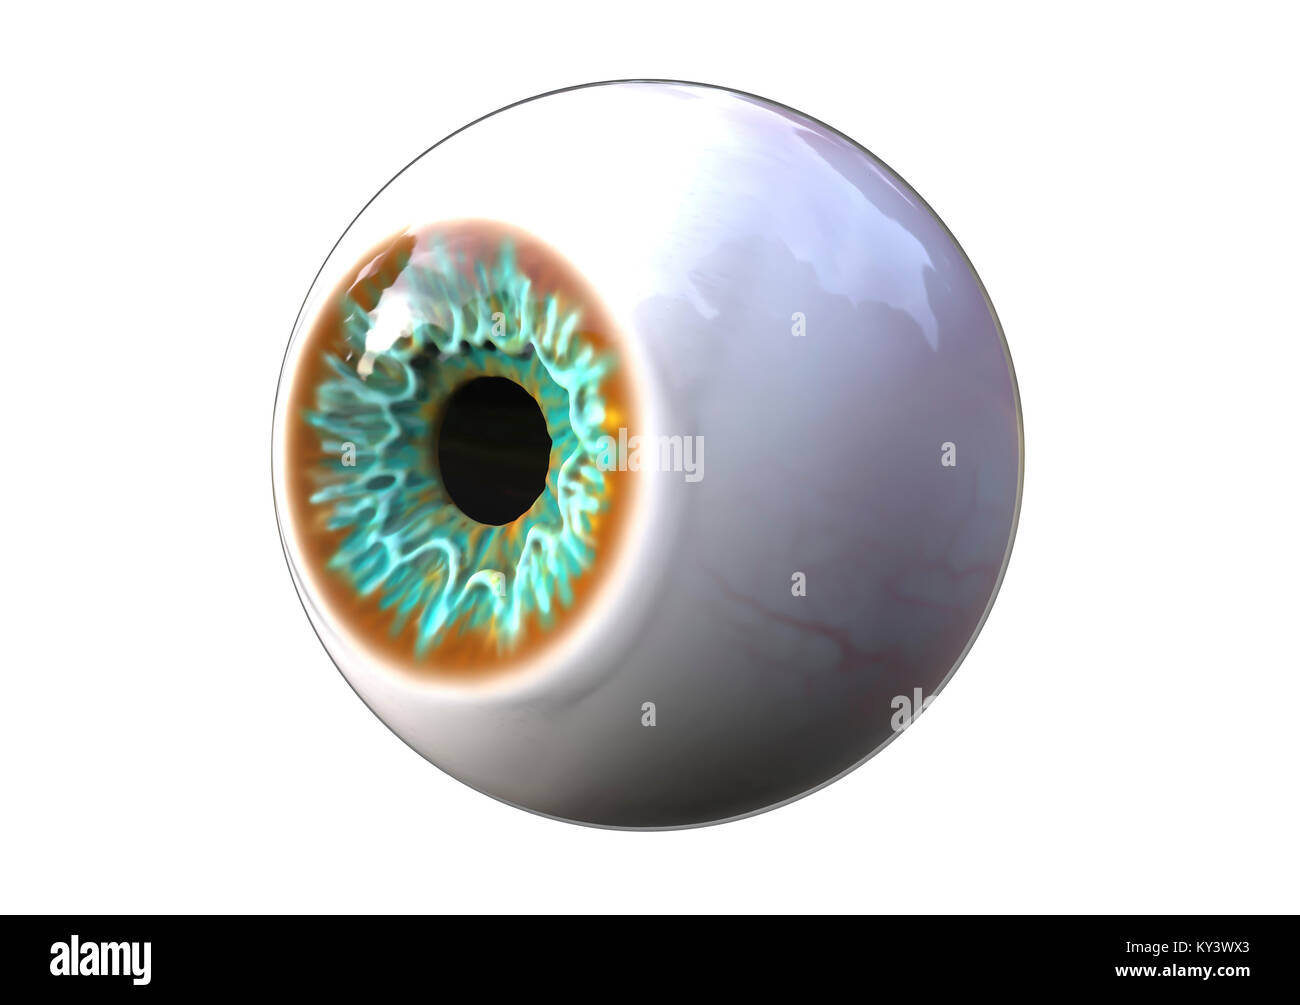 Eyeball Anatomy Cut Out Stock Images & Pictures - Alamy